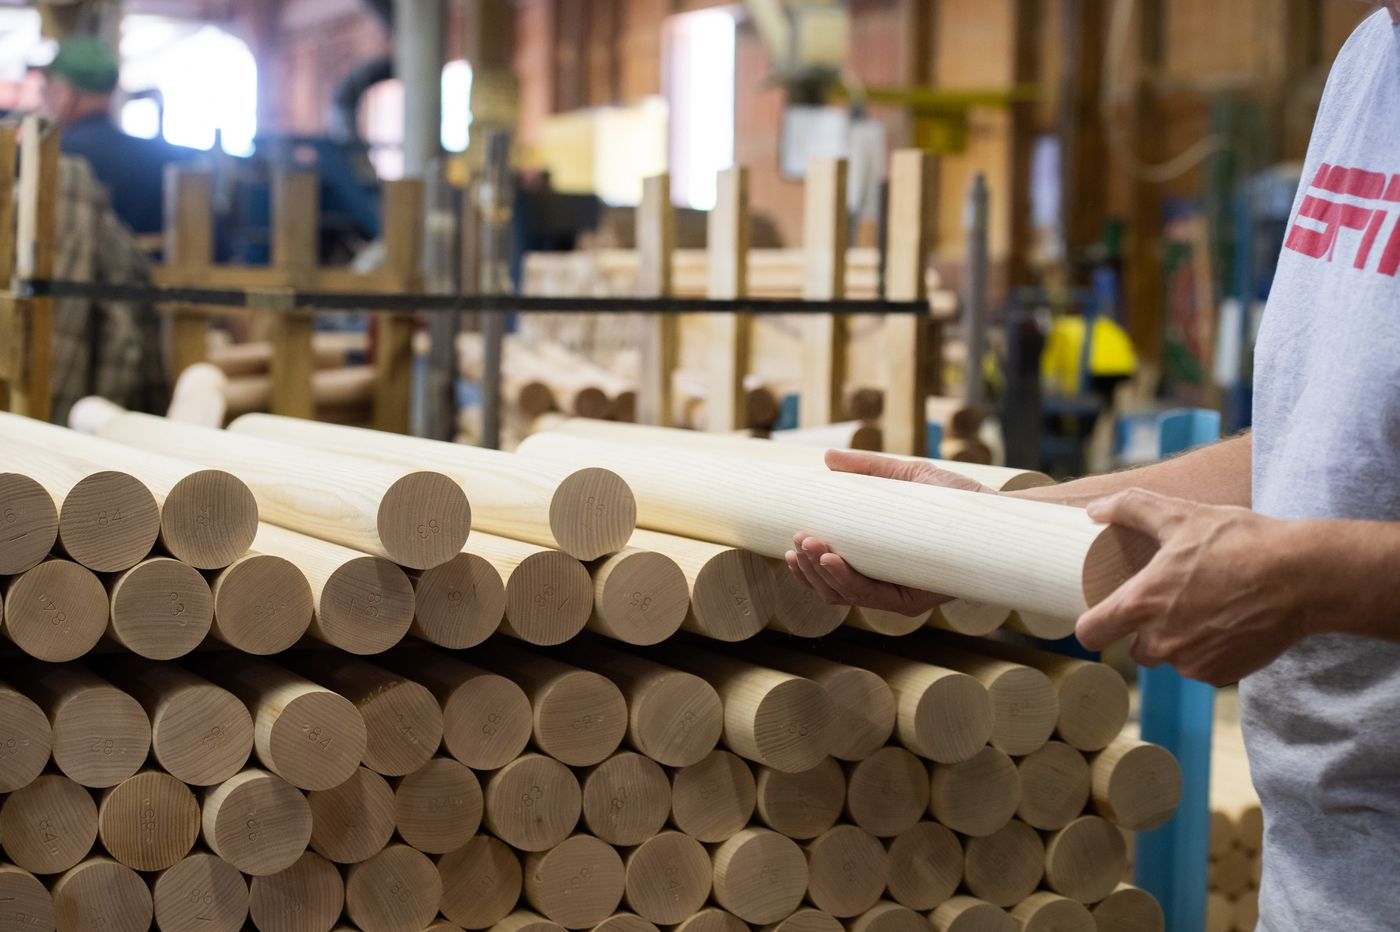 Ashes of an industry: A Pennsylvania tradition is dying, one baseball bat at a time